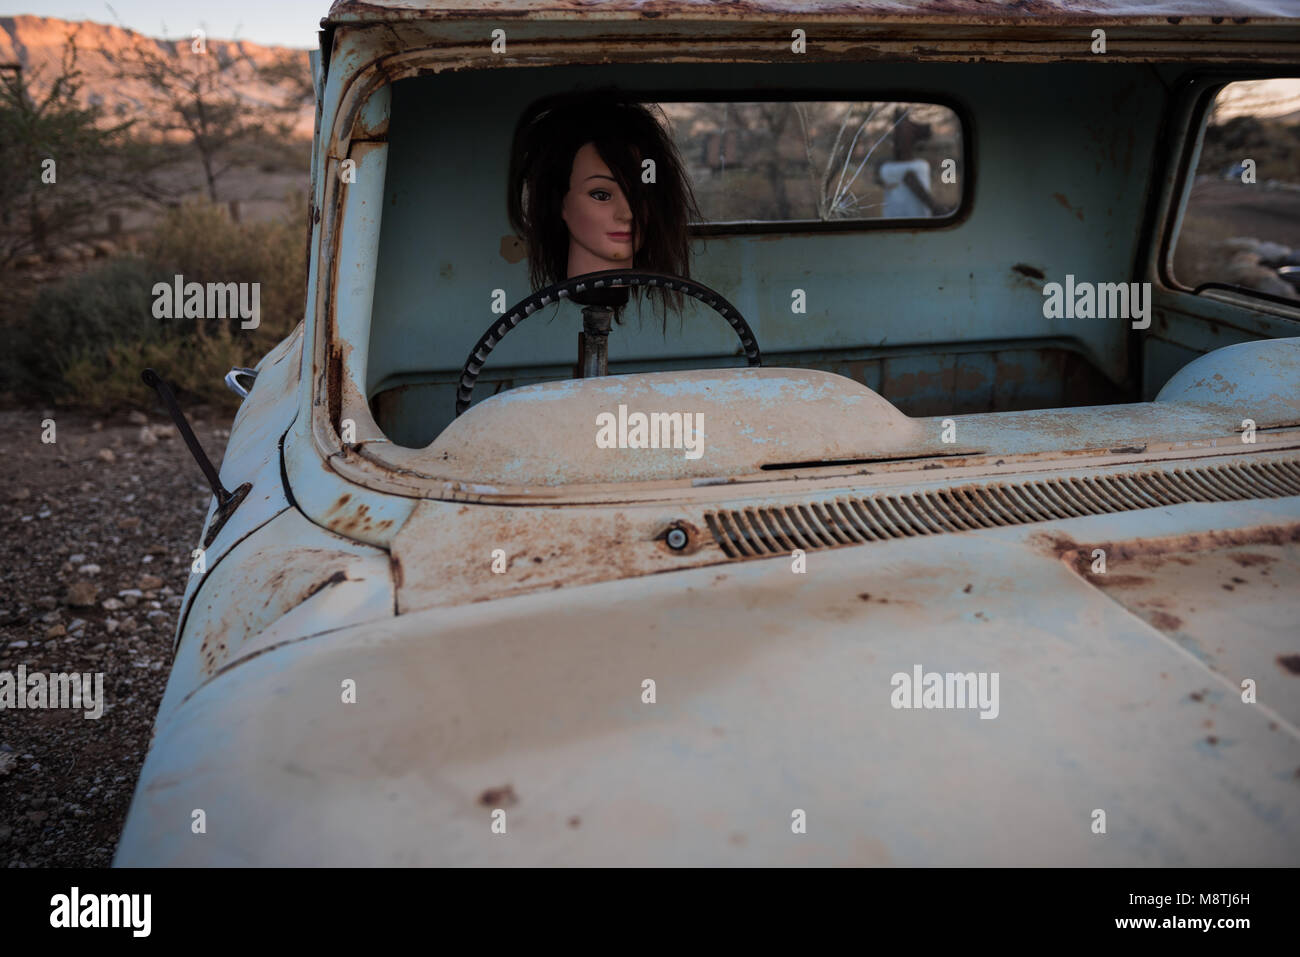 A mannequin head set in a car as part of the sculpture garden at Namibia's Tsauchab river camp - Stock Image